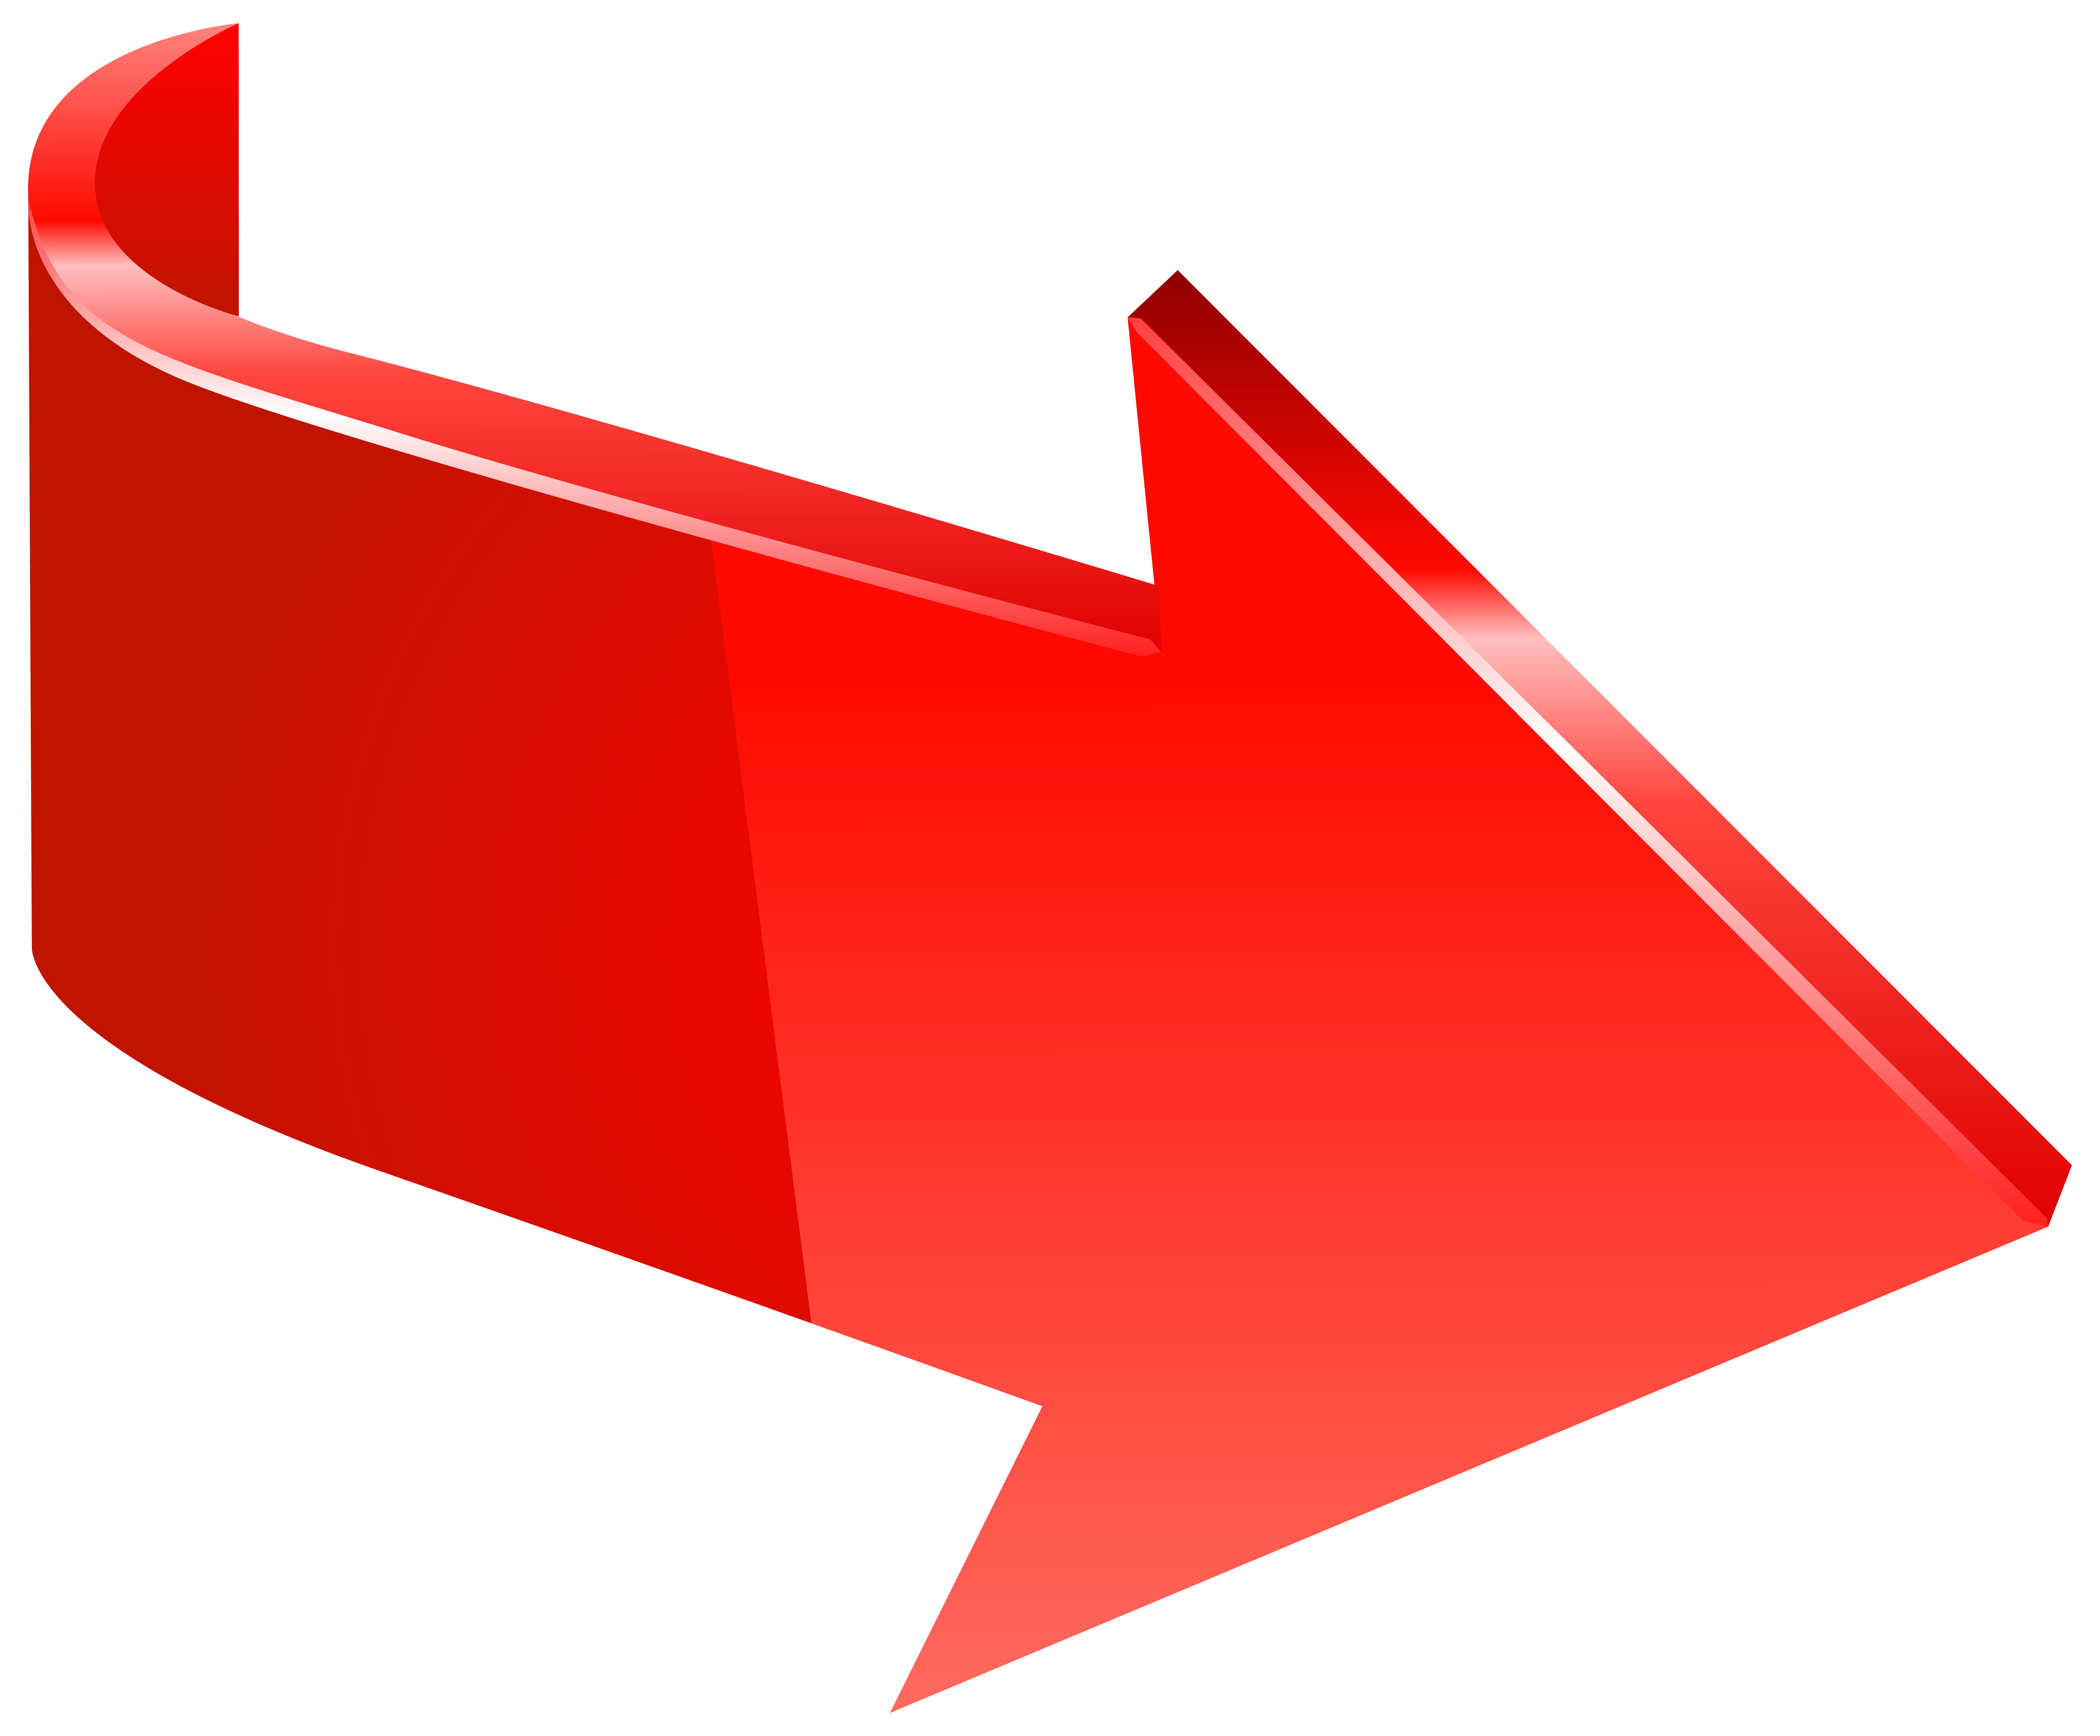 Transparent clip art image. Red right arrow png svg royalty free library